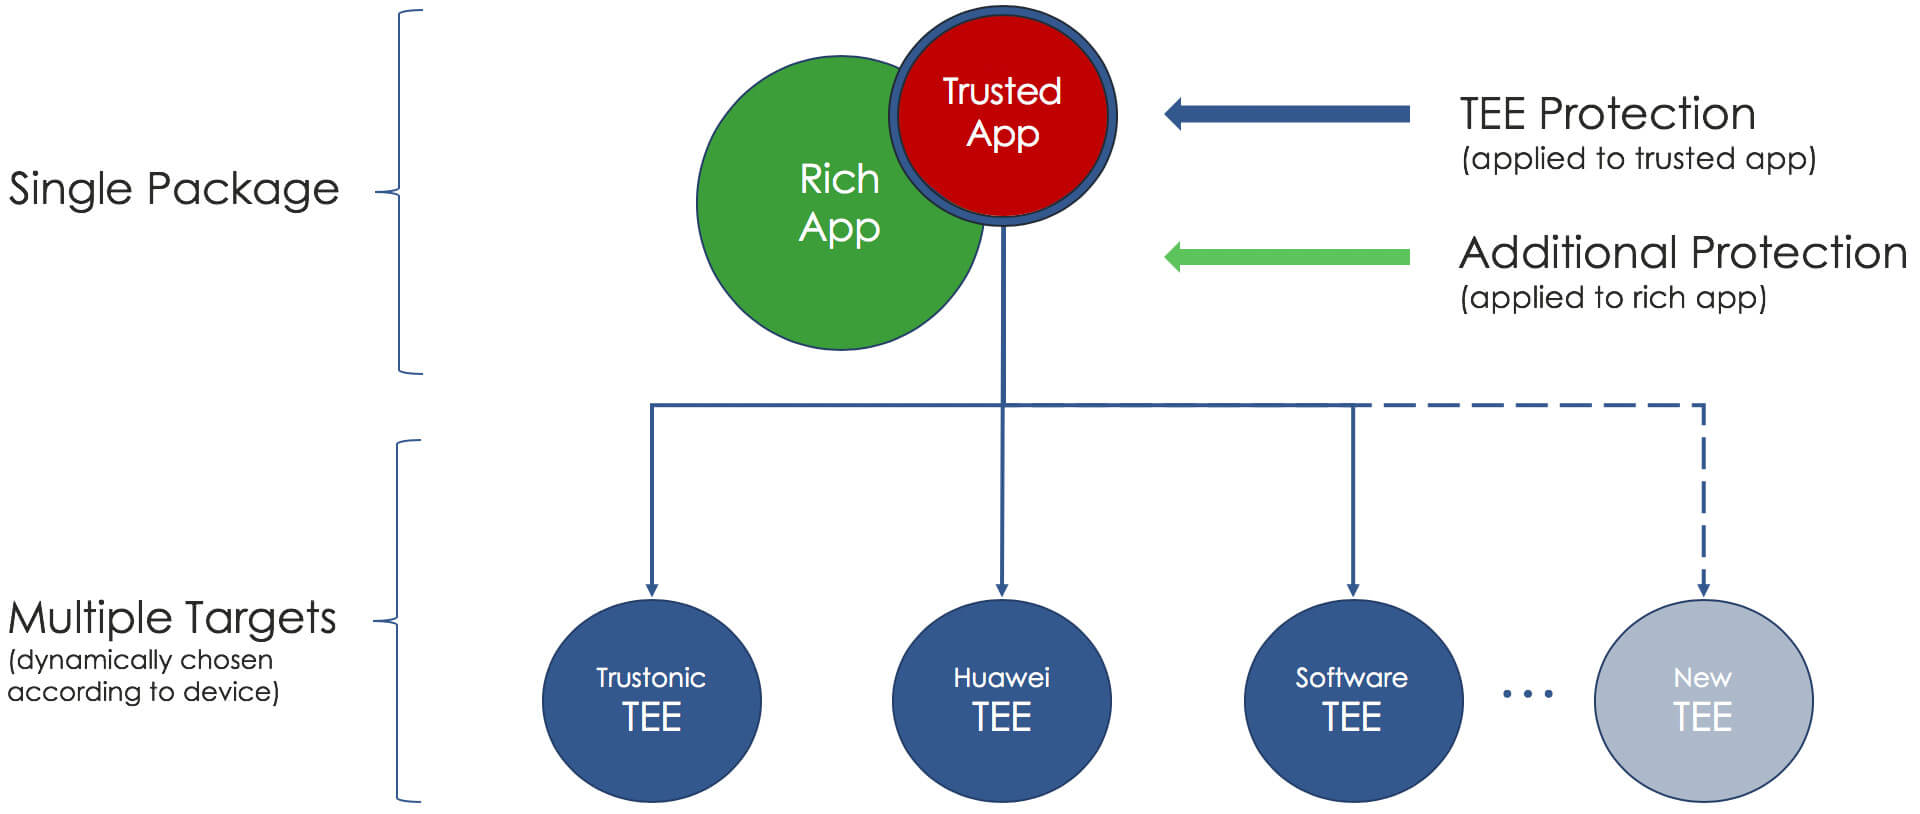 multi-TEE application protection